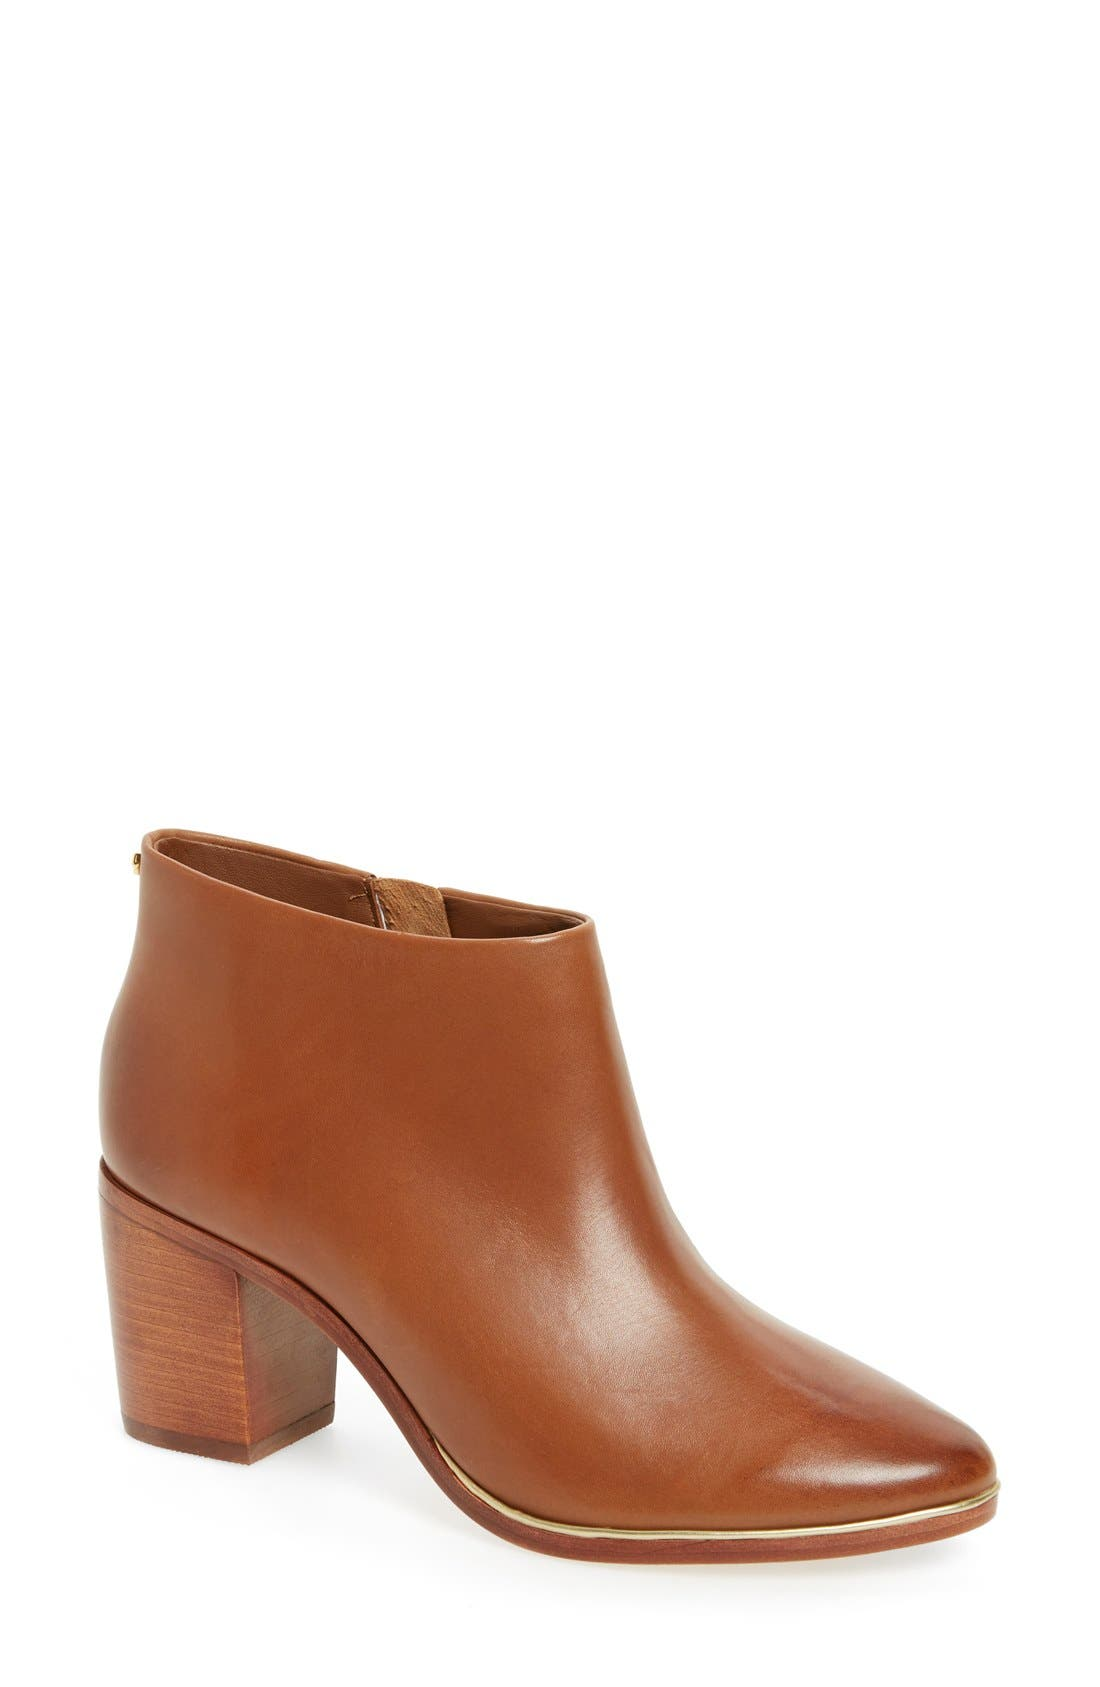 Alternate Image 1 Selected - Ted Baker London 'Hiharu 2' Zip Bootie (Women)